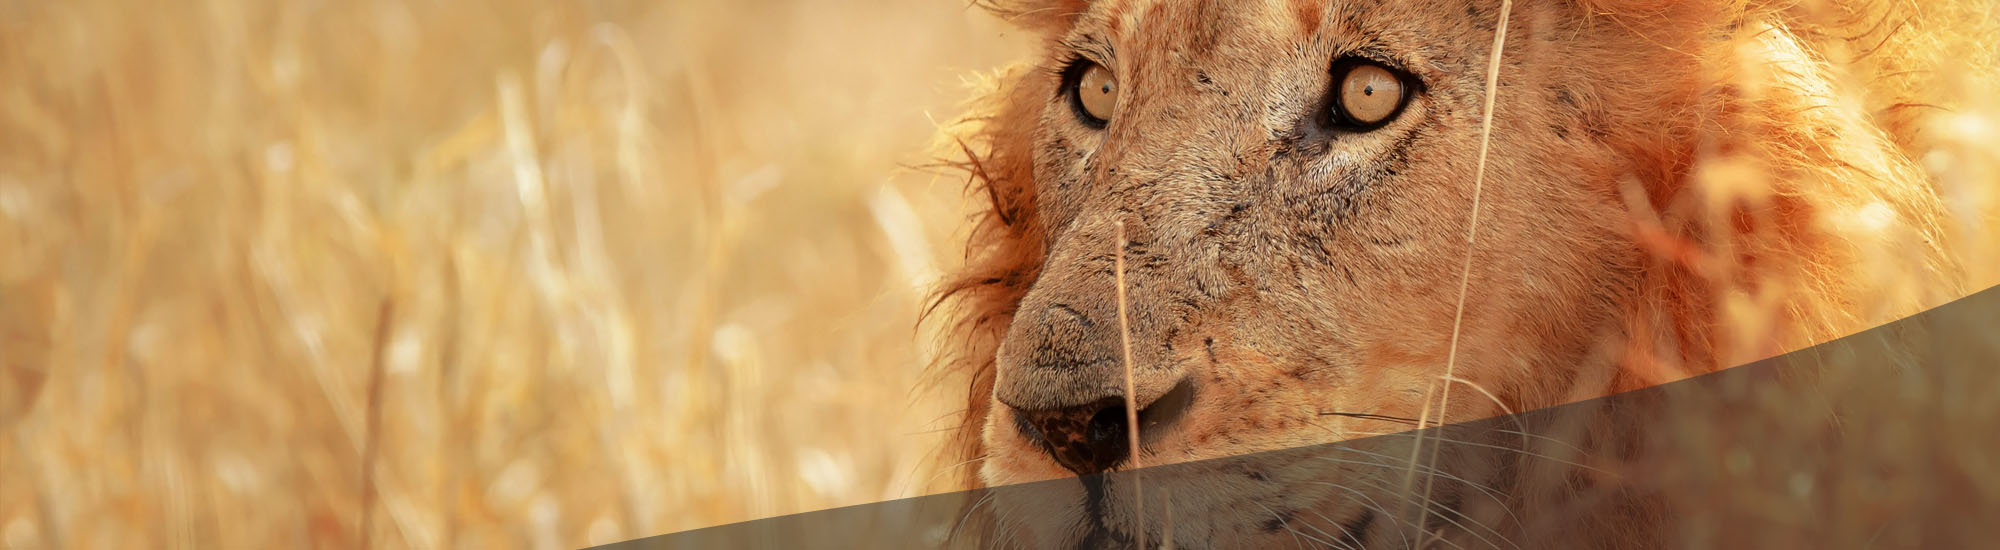 Tour and Safari in the amazing South Africa